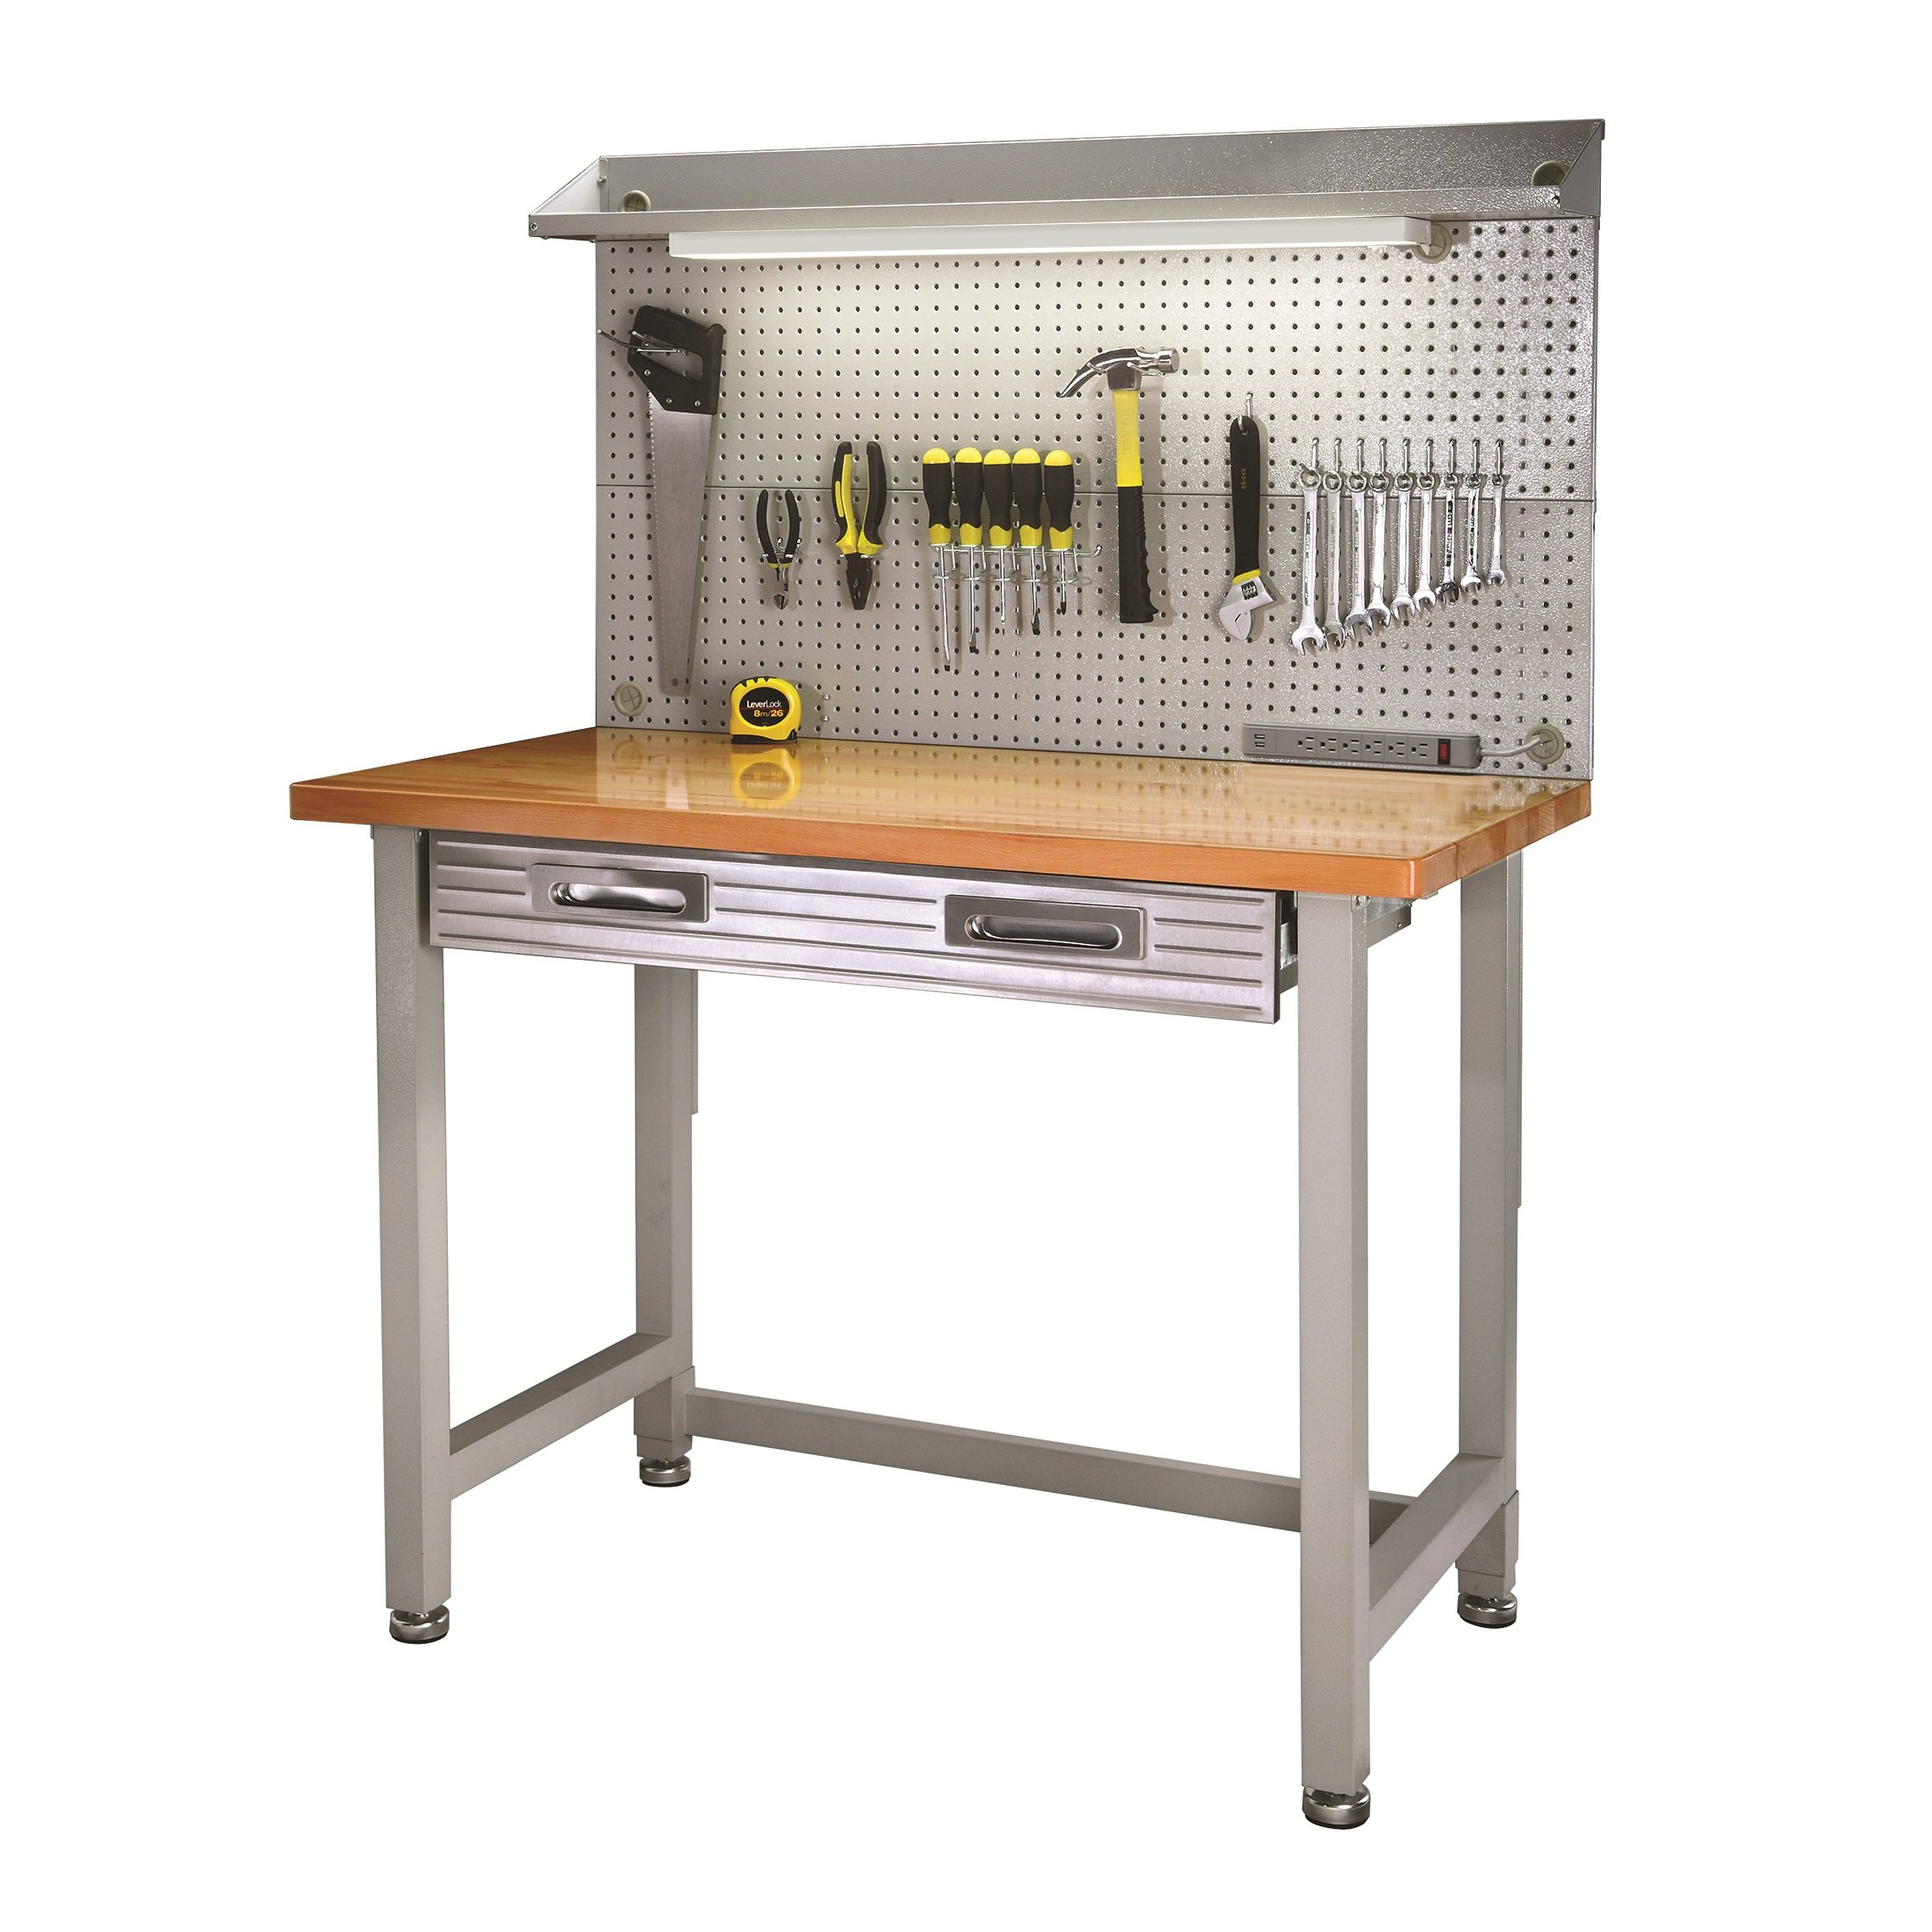 Seville Classics (UHD20247B) UltraHD Lighted Workbench (48L x 24W x 65.5H Inches) Stainless Steel by Seville Classics